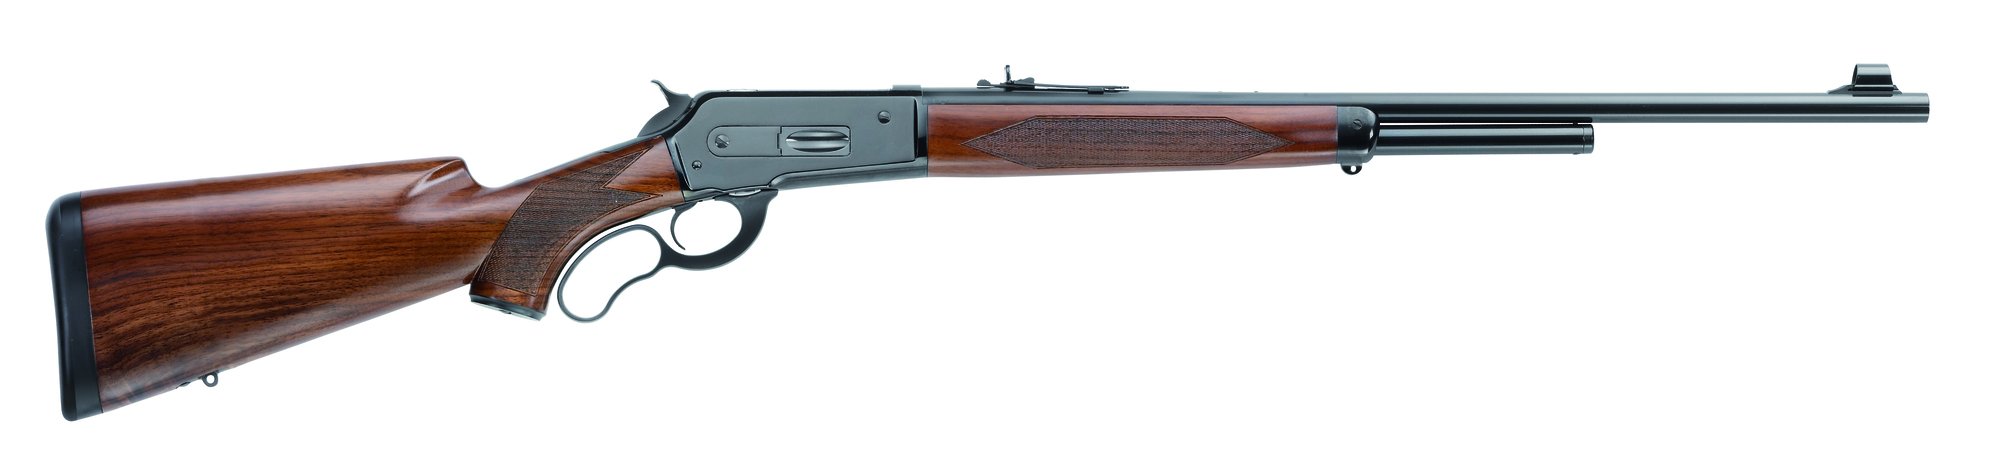 DPS740-Carabine Pedersoli Lever Action 1886/71 Cal 45-70 - DPS7404570